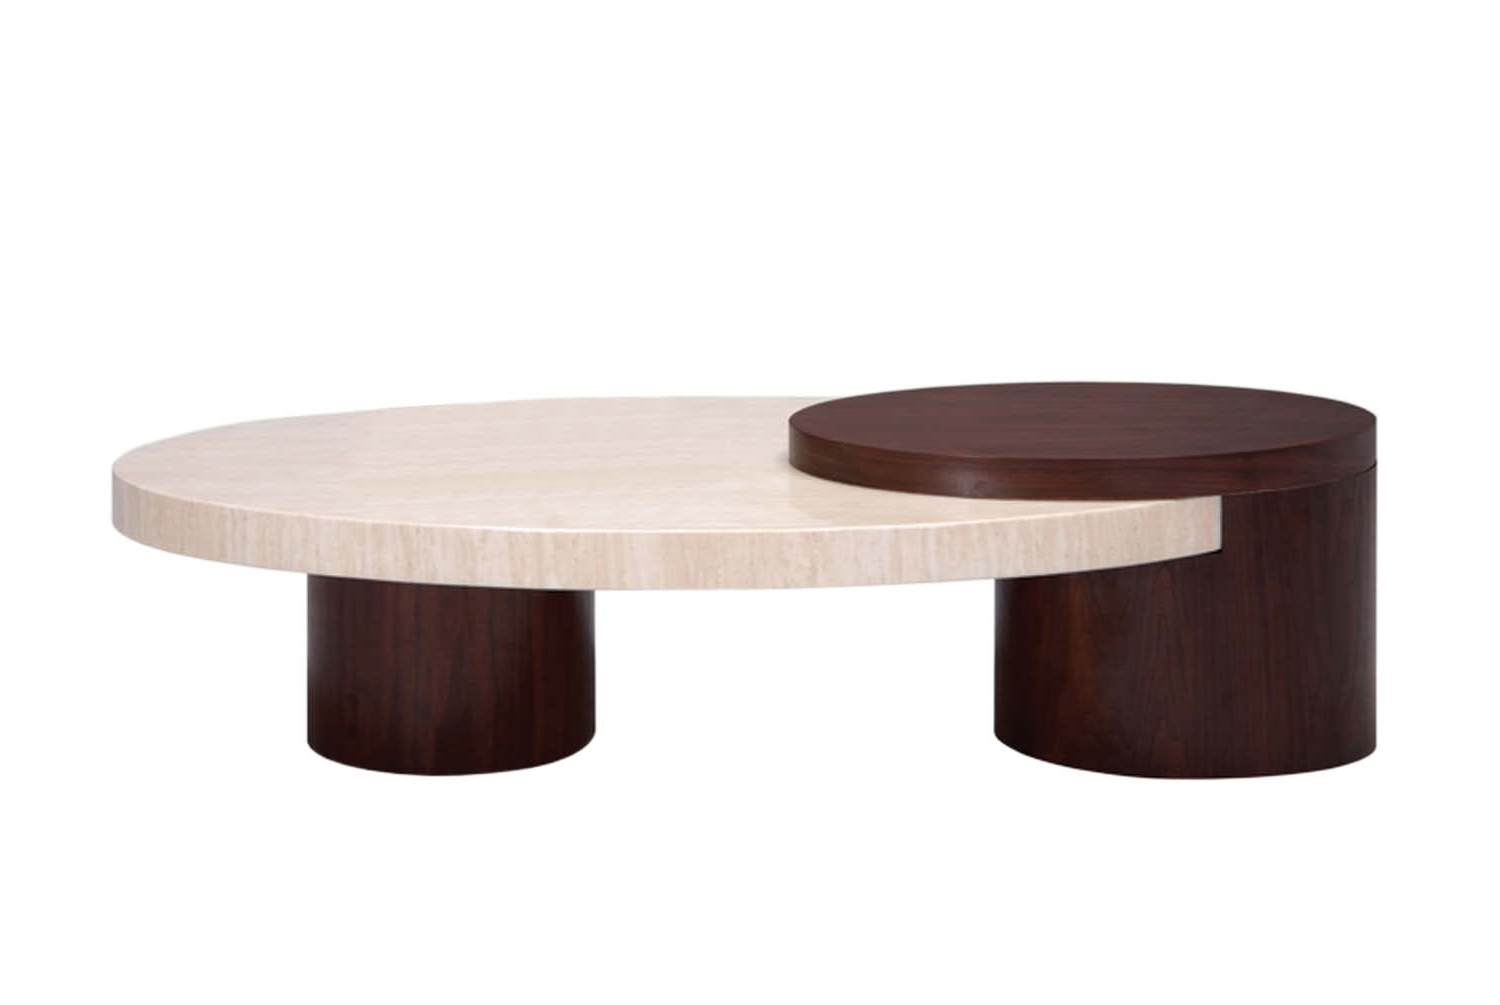 Round Travertine Coffee Table — Sushi Ichimura Decor : Contemporary Within Most Up To Date Chiseled Edge Coffee Tables (View 17 of 20)